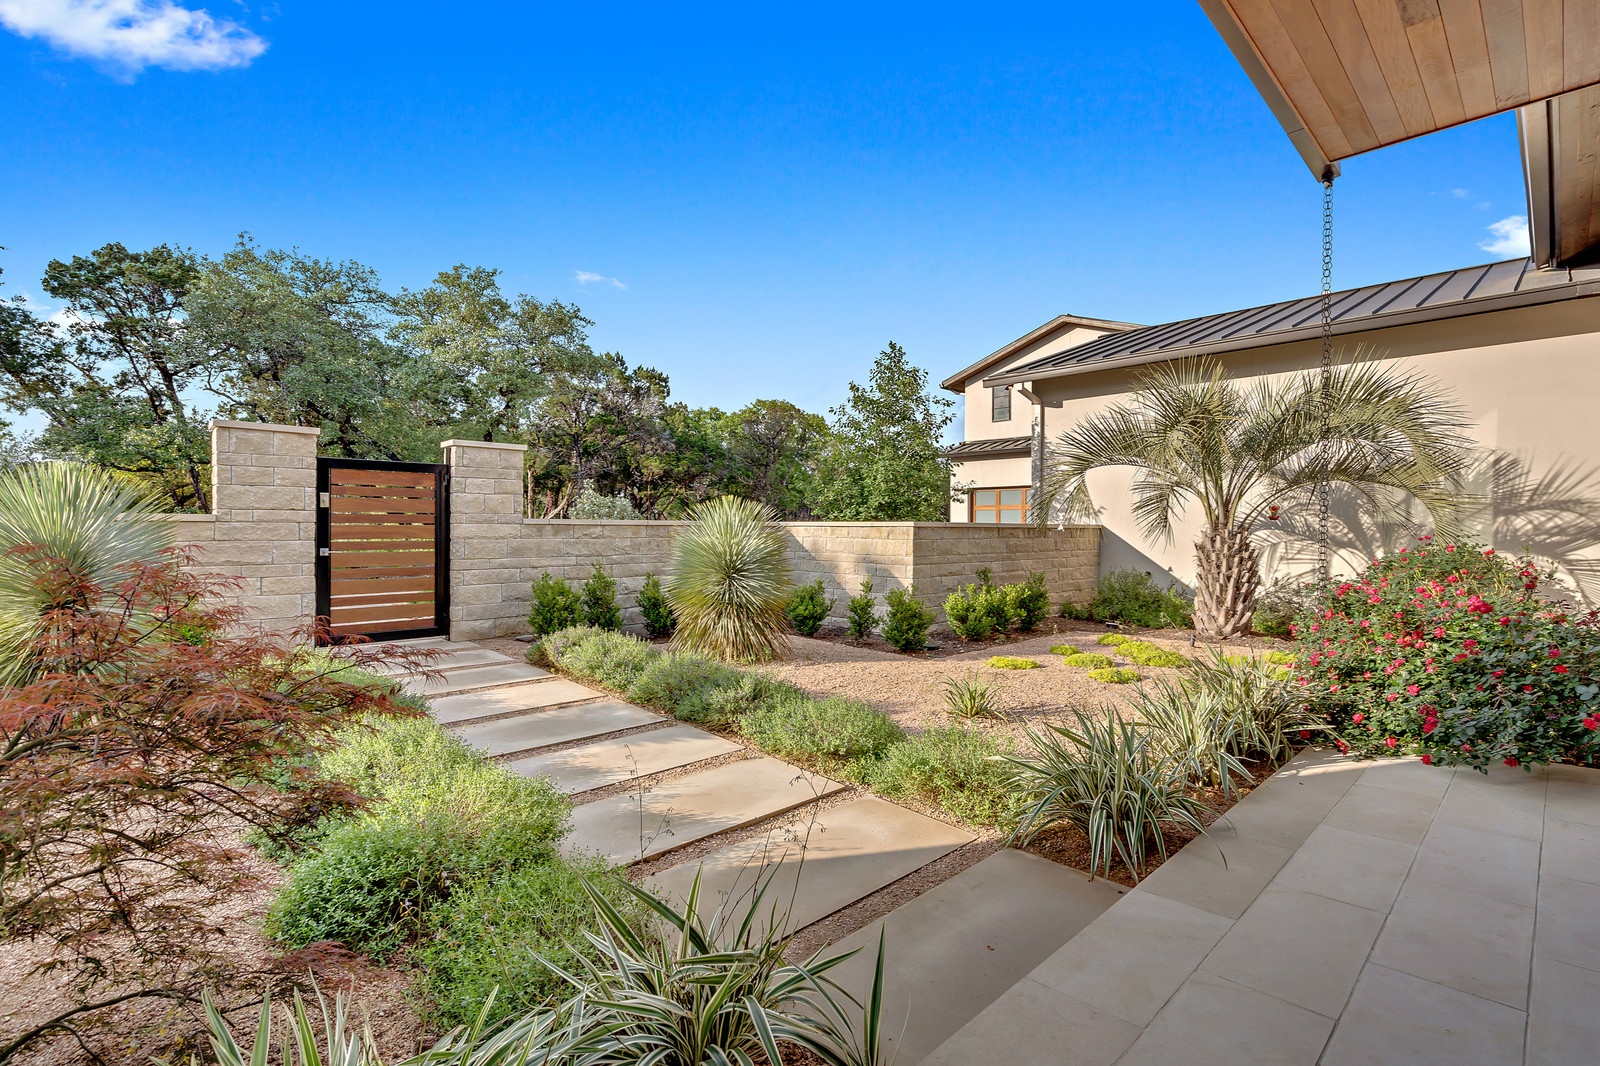 Front courtyard with native landscaping